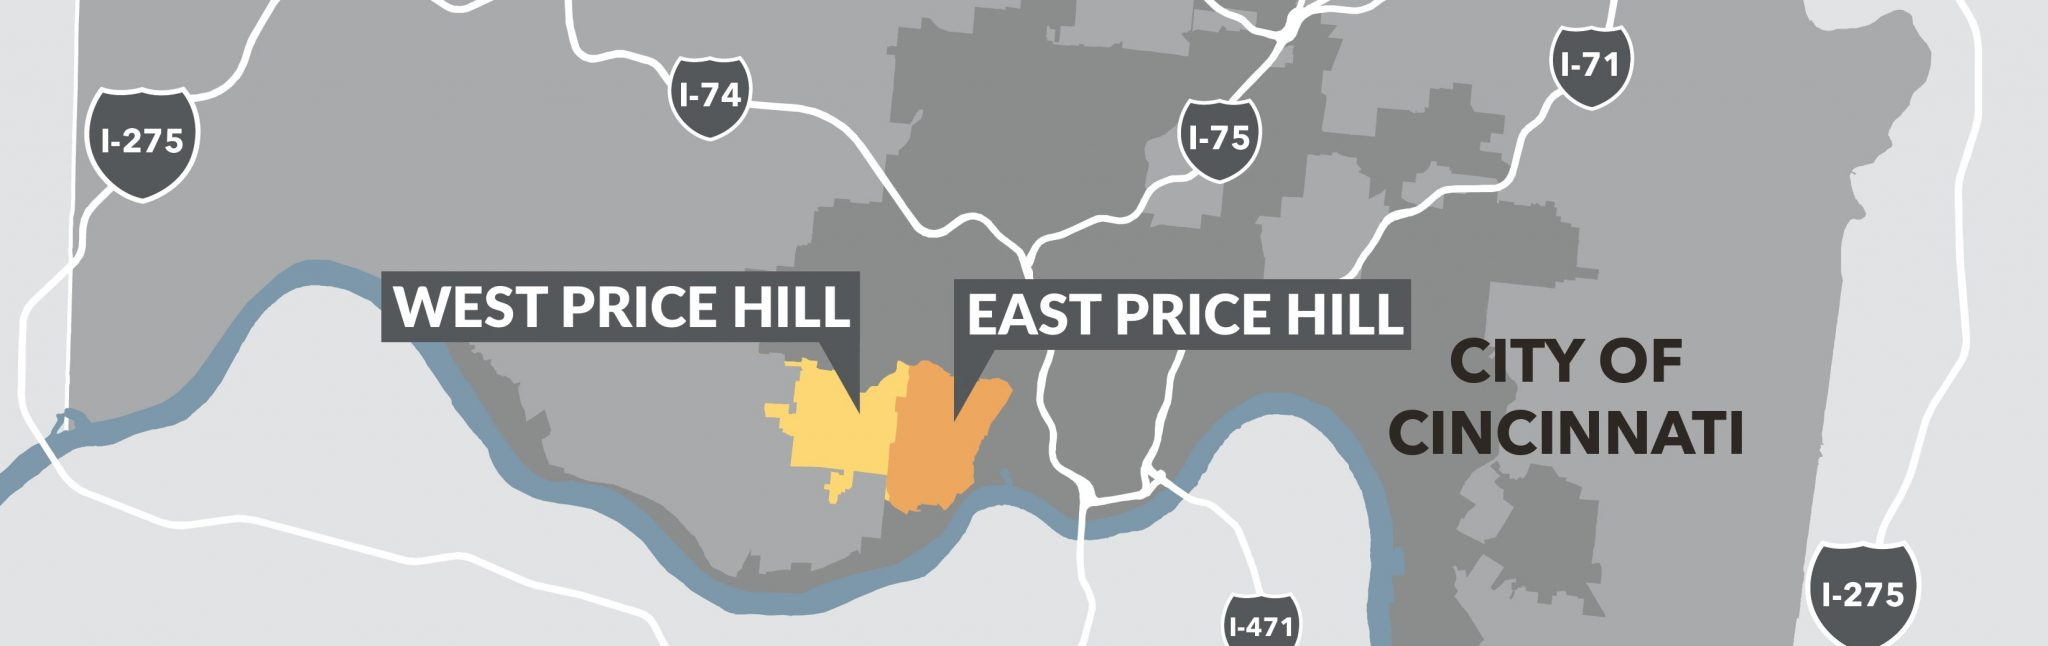 Context Map Price Hill01 Greater Cincinnati Redevelopment Authority